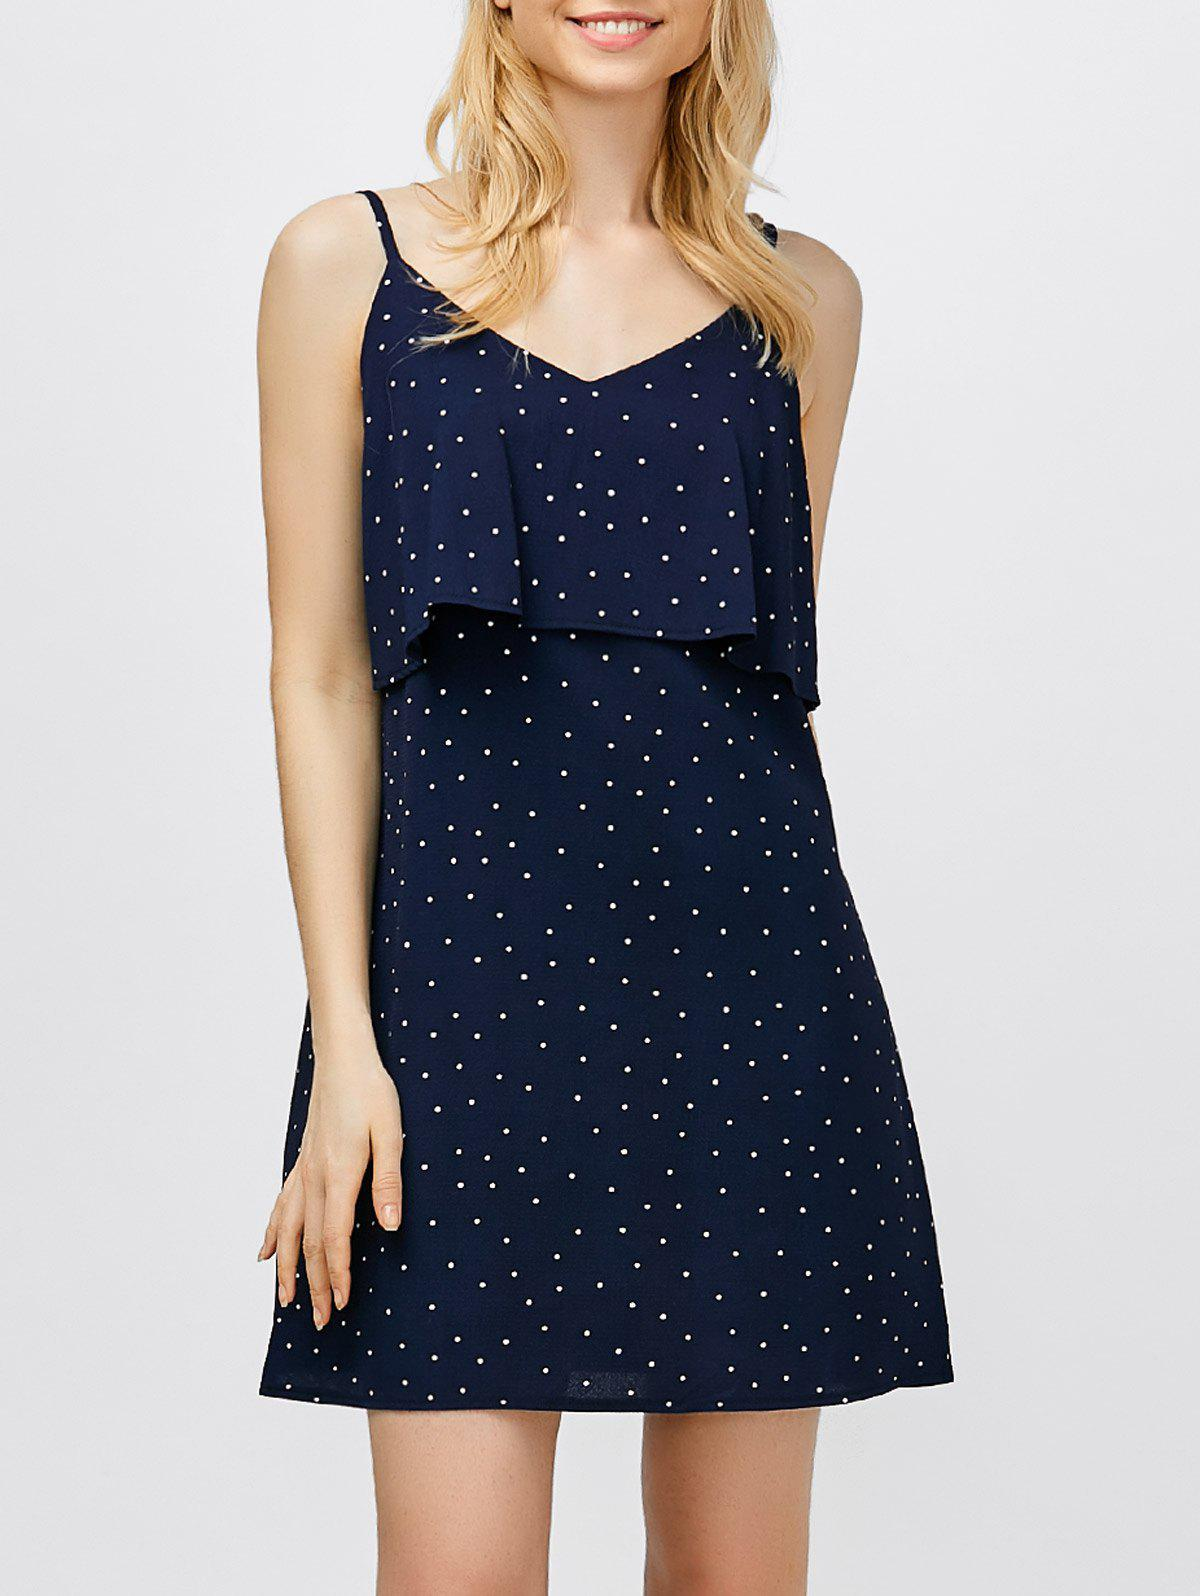 Outfit Ruffle Polka Dot Mini Slip Dress